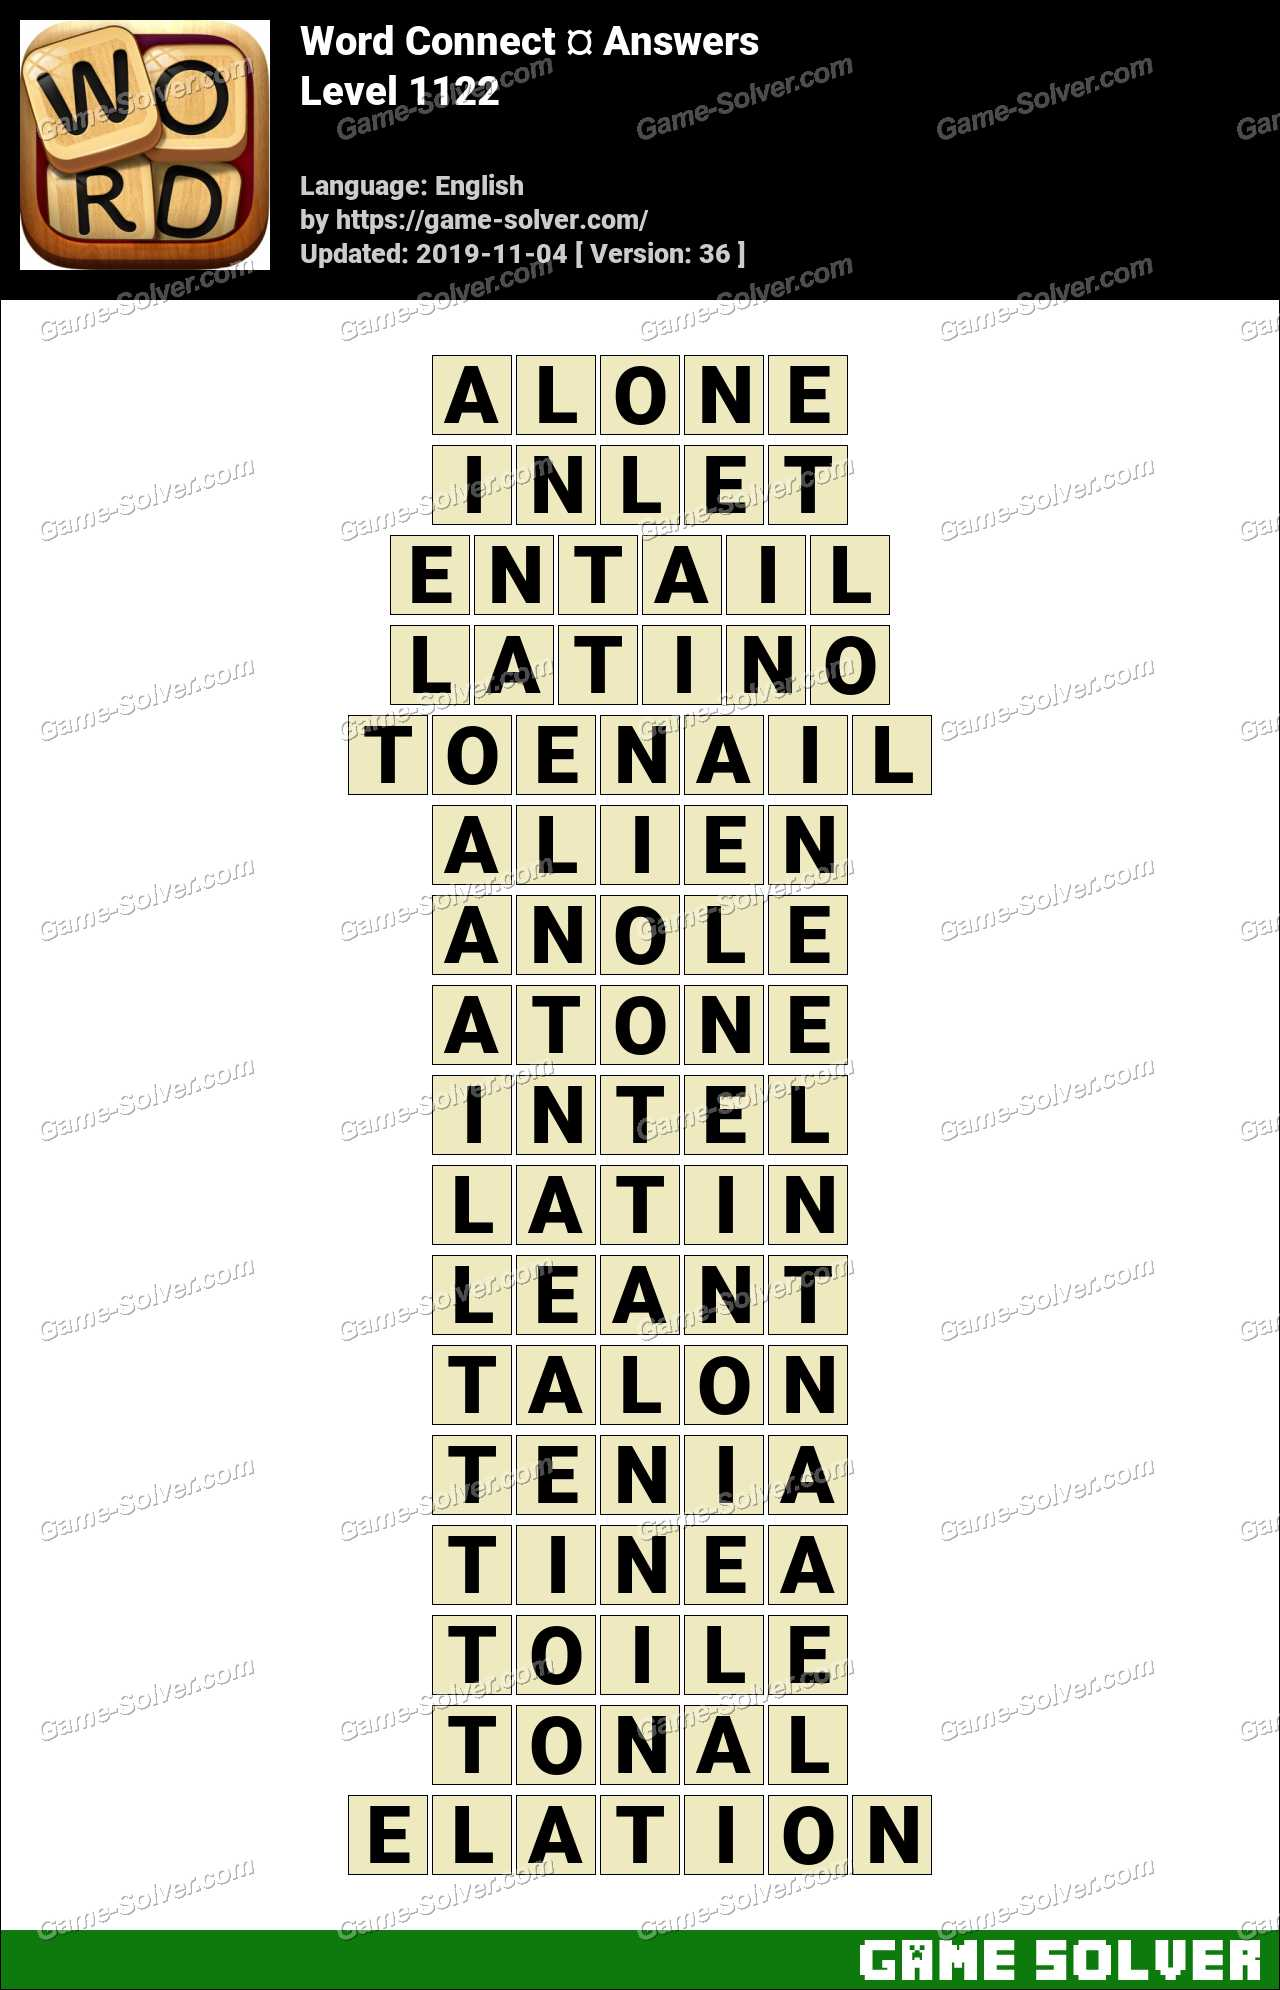 Word Connect Level 1122 Answers